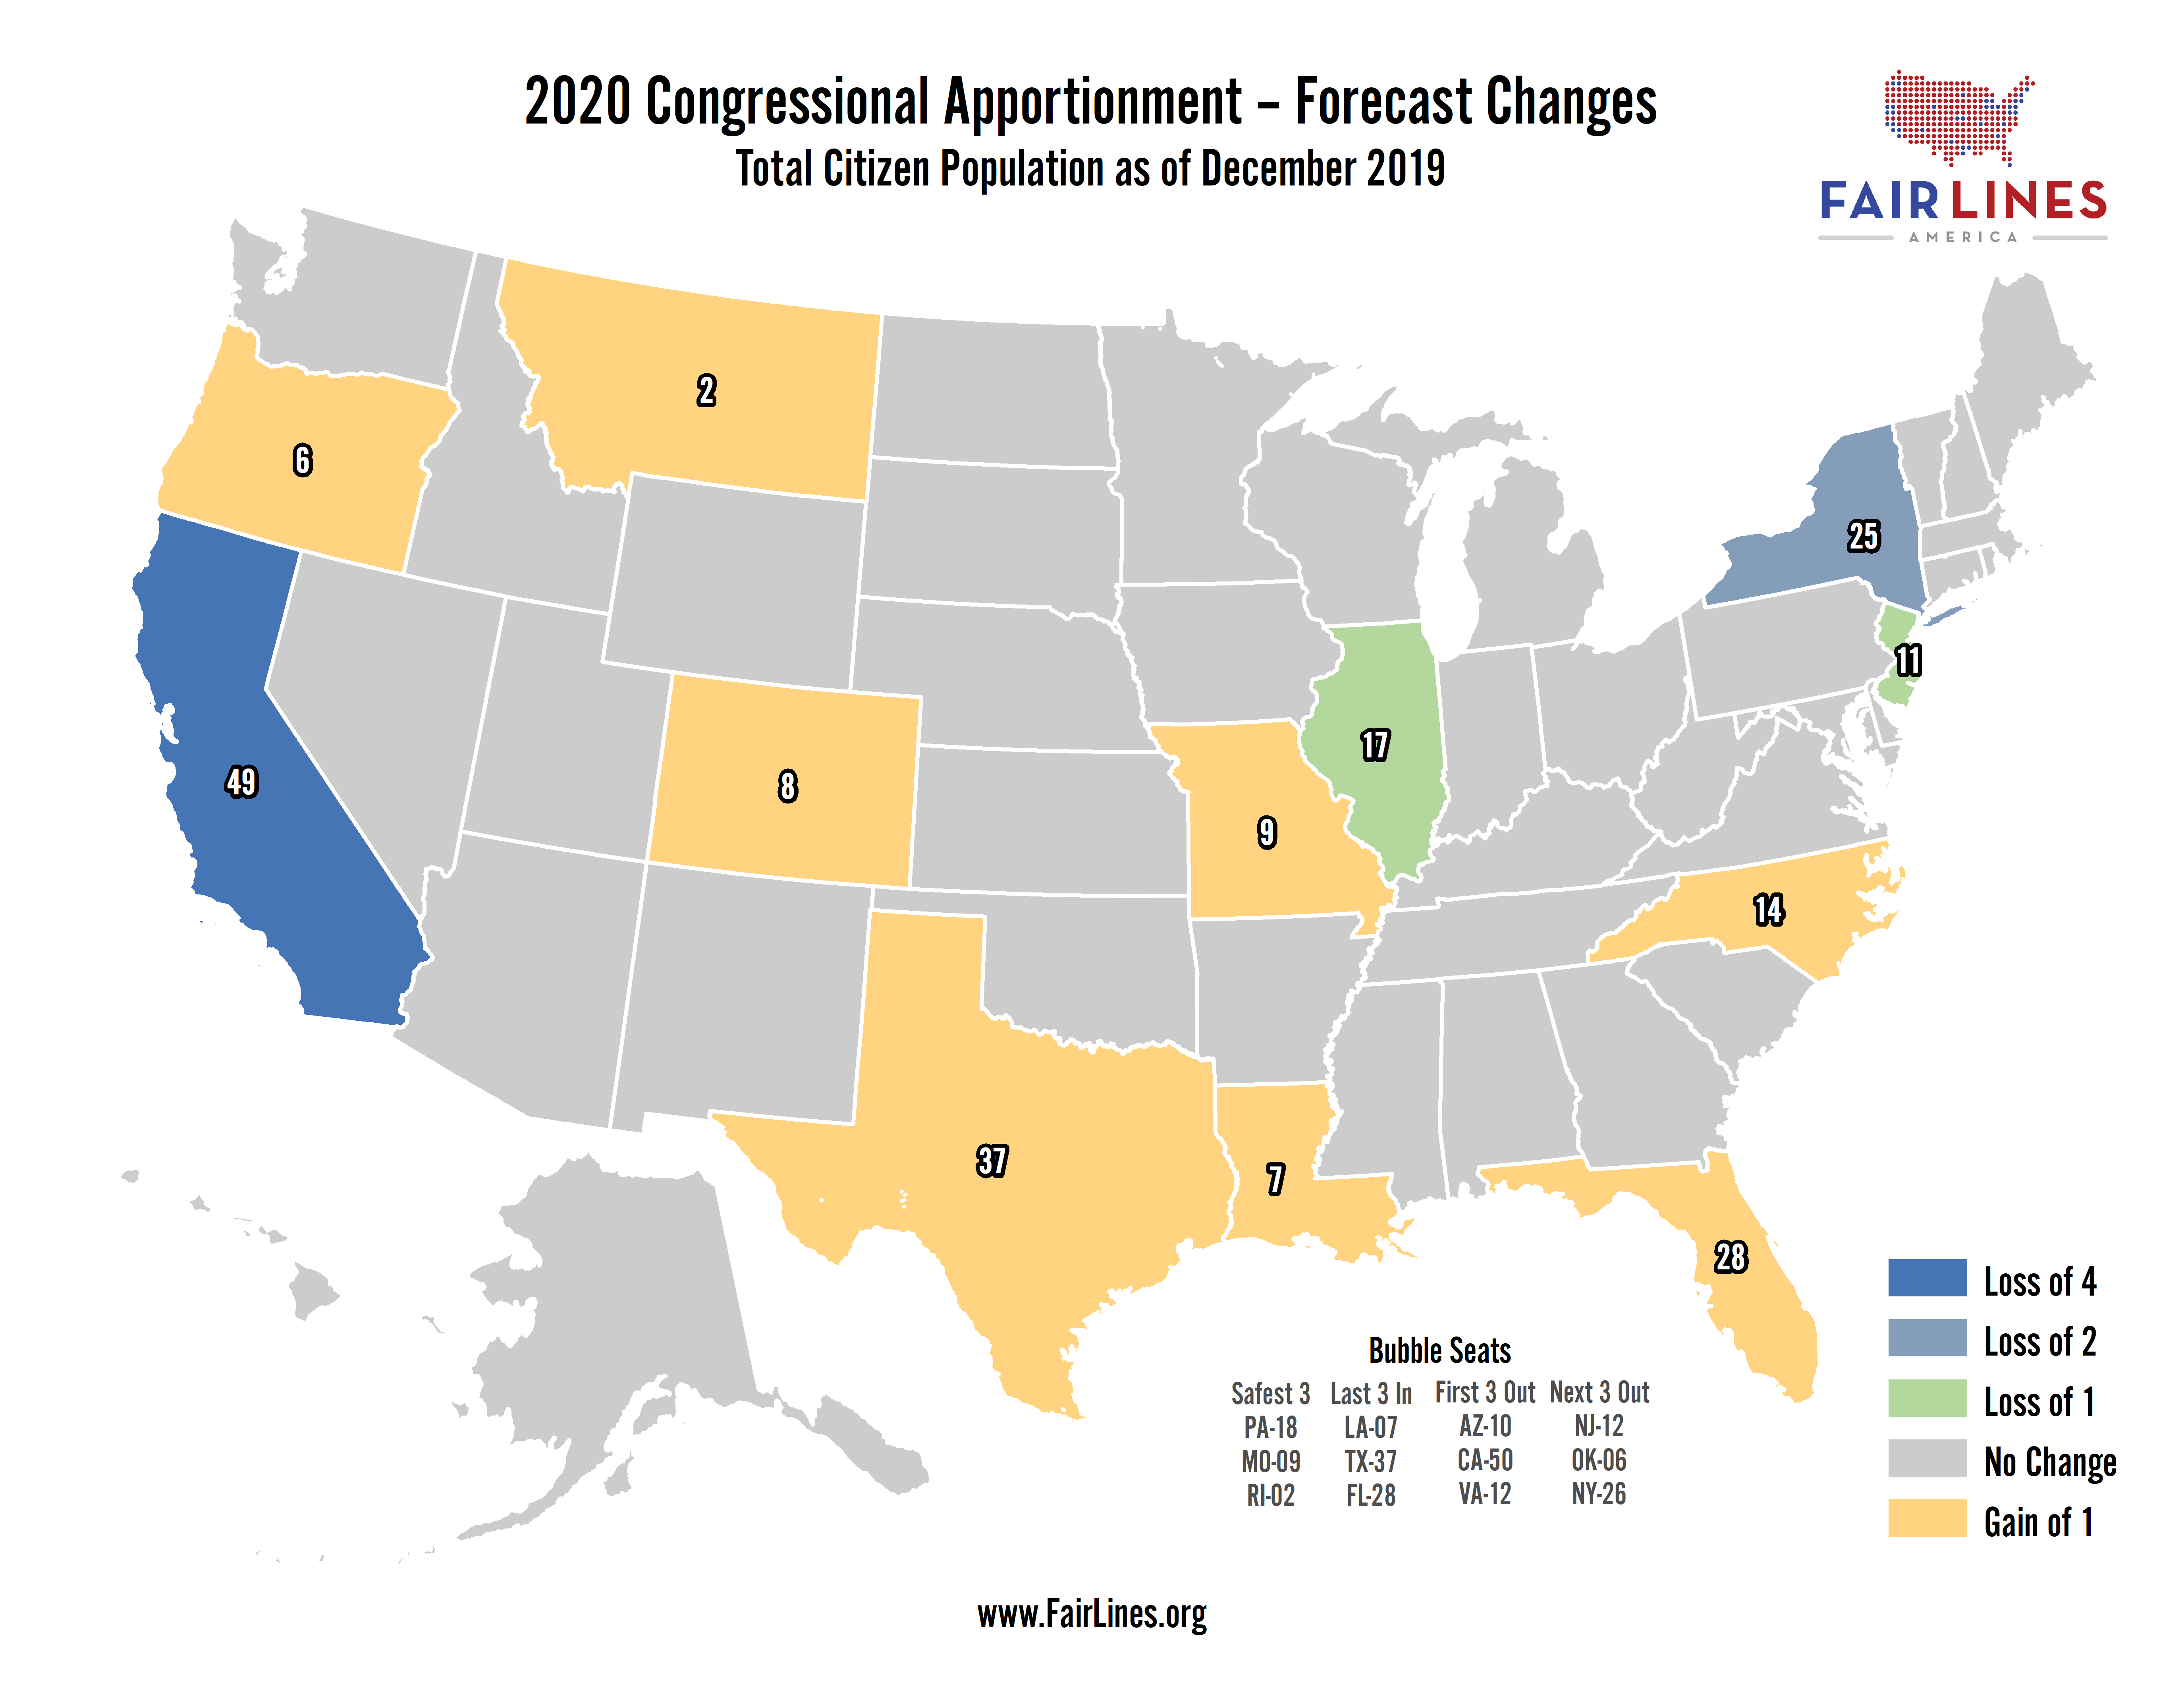 Apportionment2020_Cpop_update_Dec2019.png